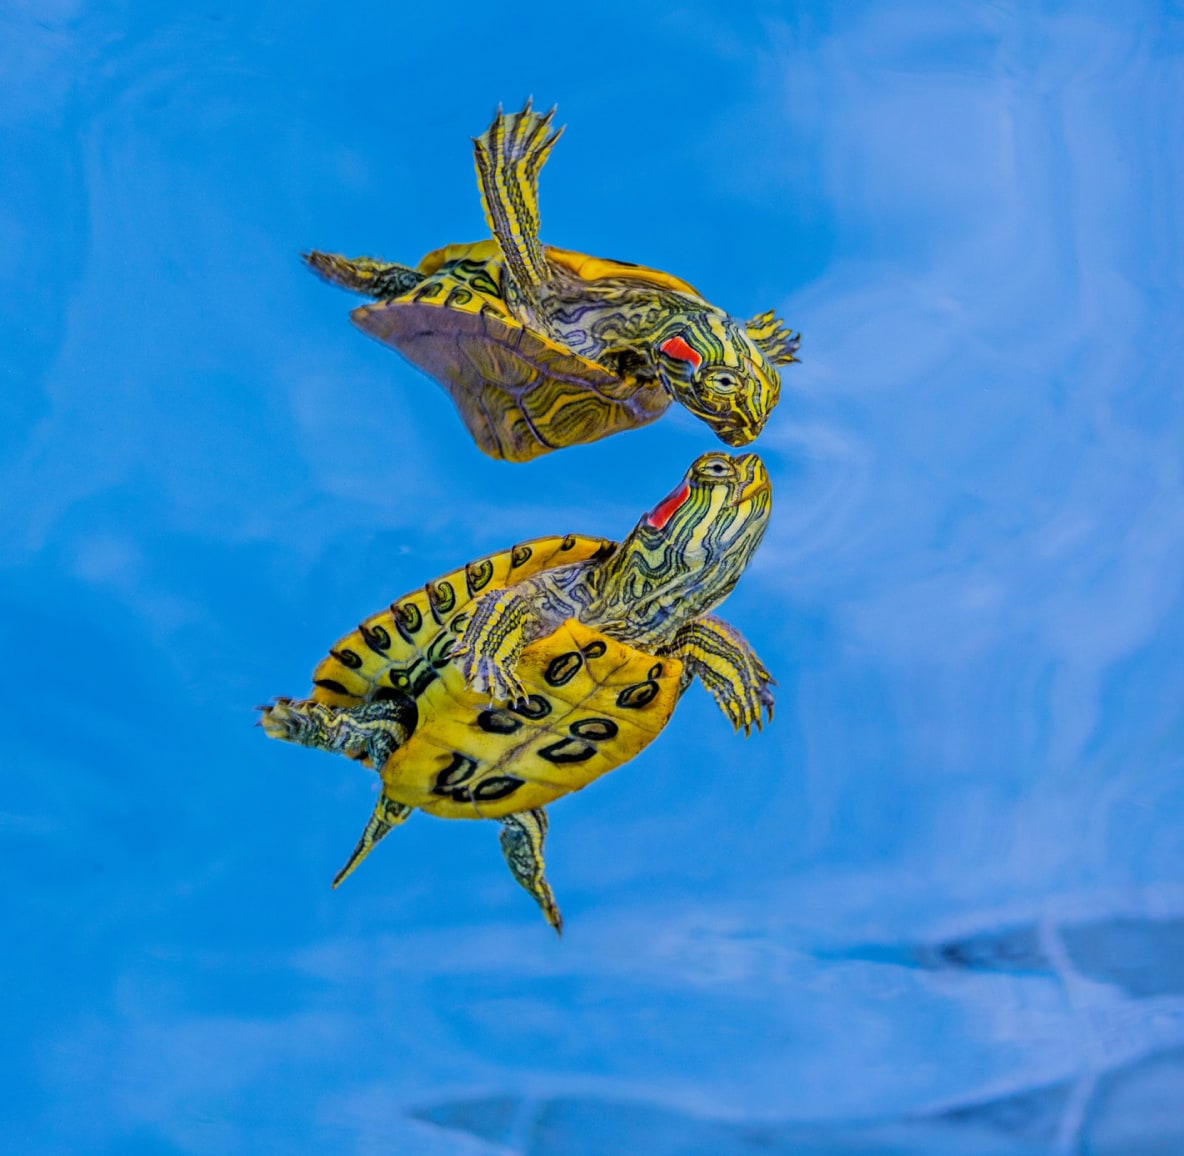 Mirrored image of a yellow and green turtle swimming in light blue water